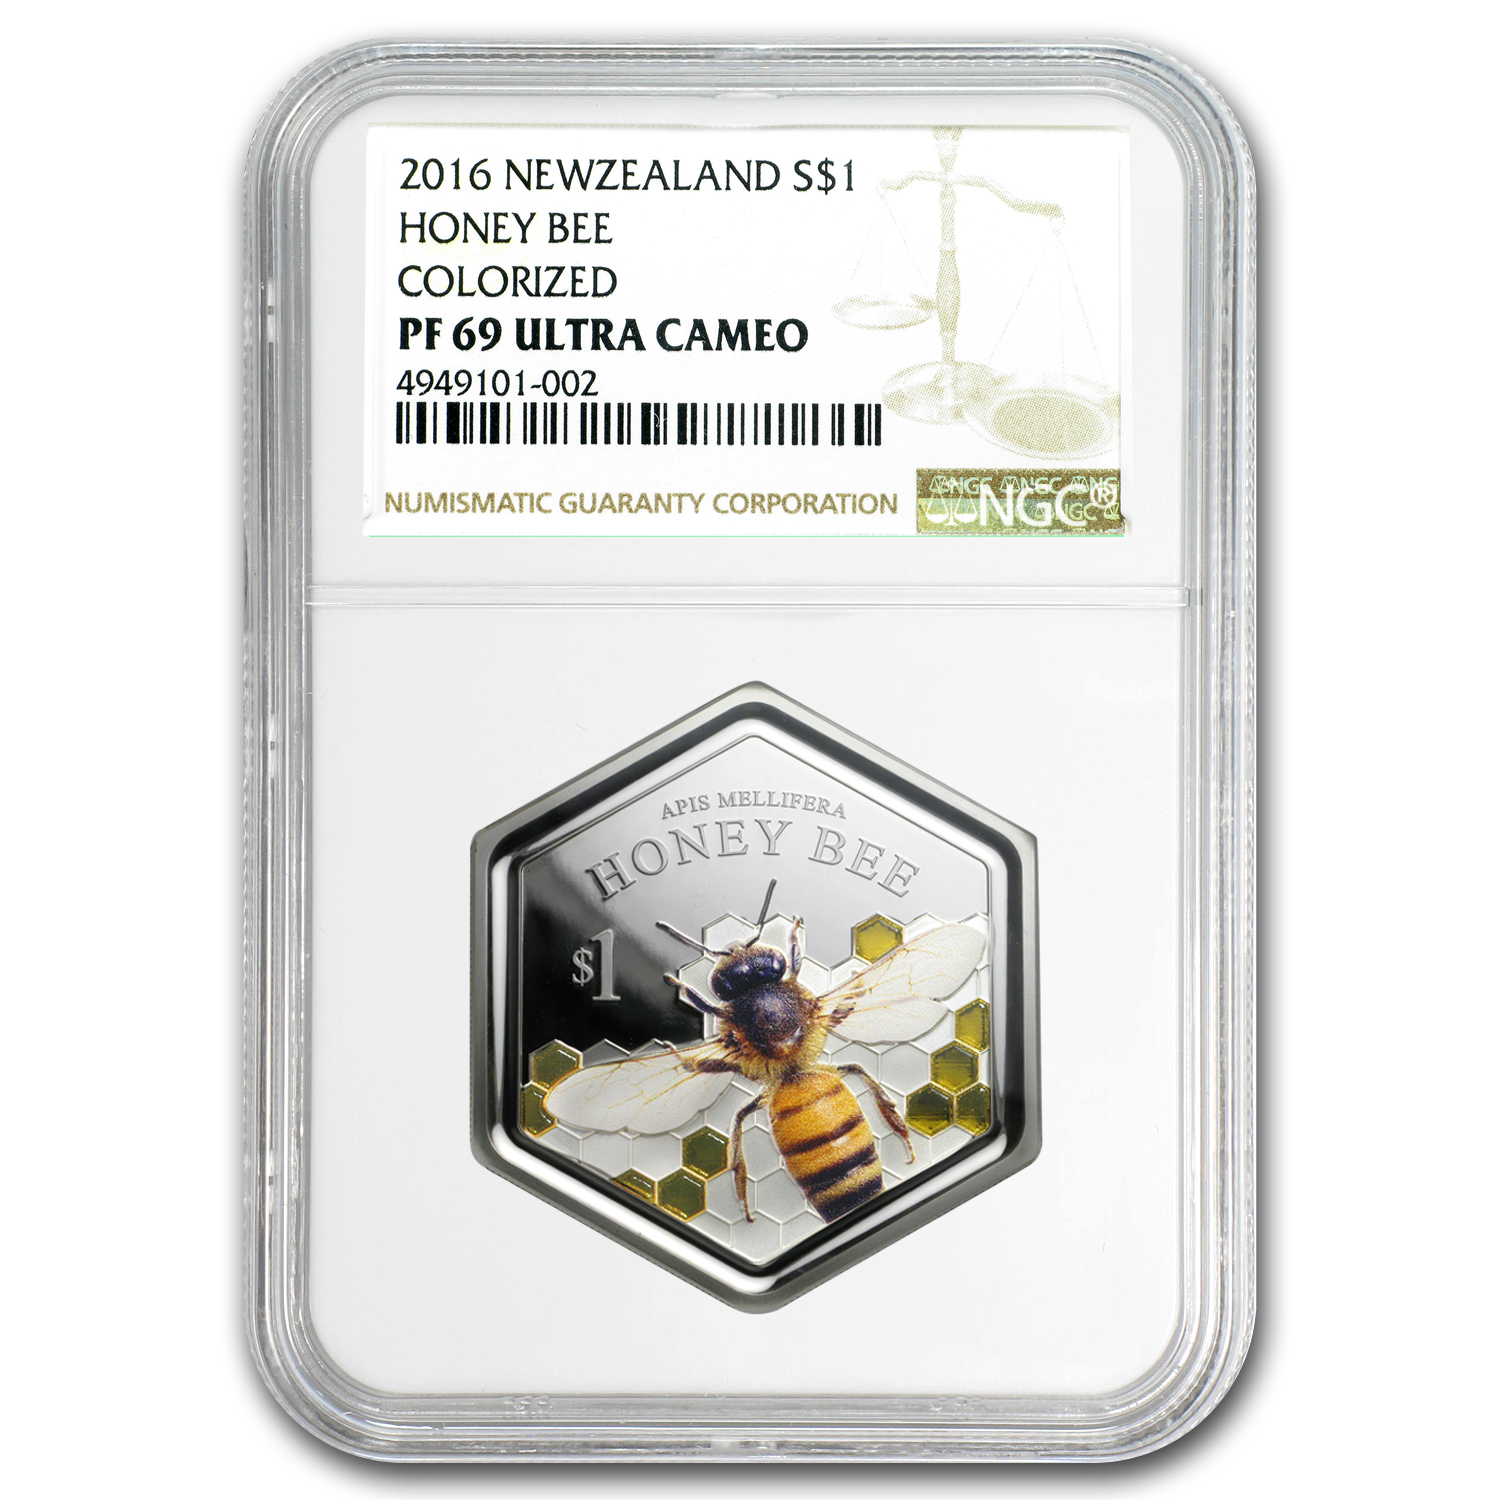 2016 New Zealand 1 oz Silver $1 Honey Bee Coin PF-69 NGC